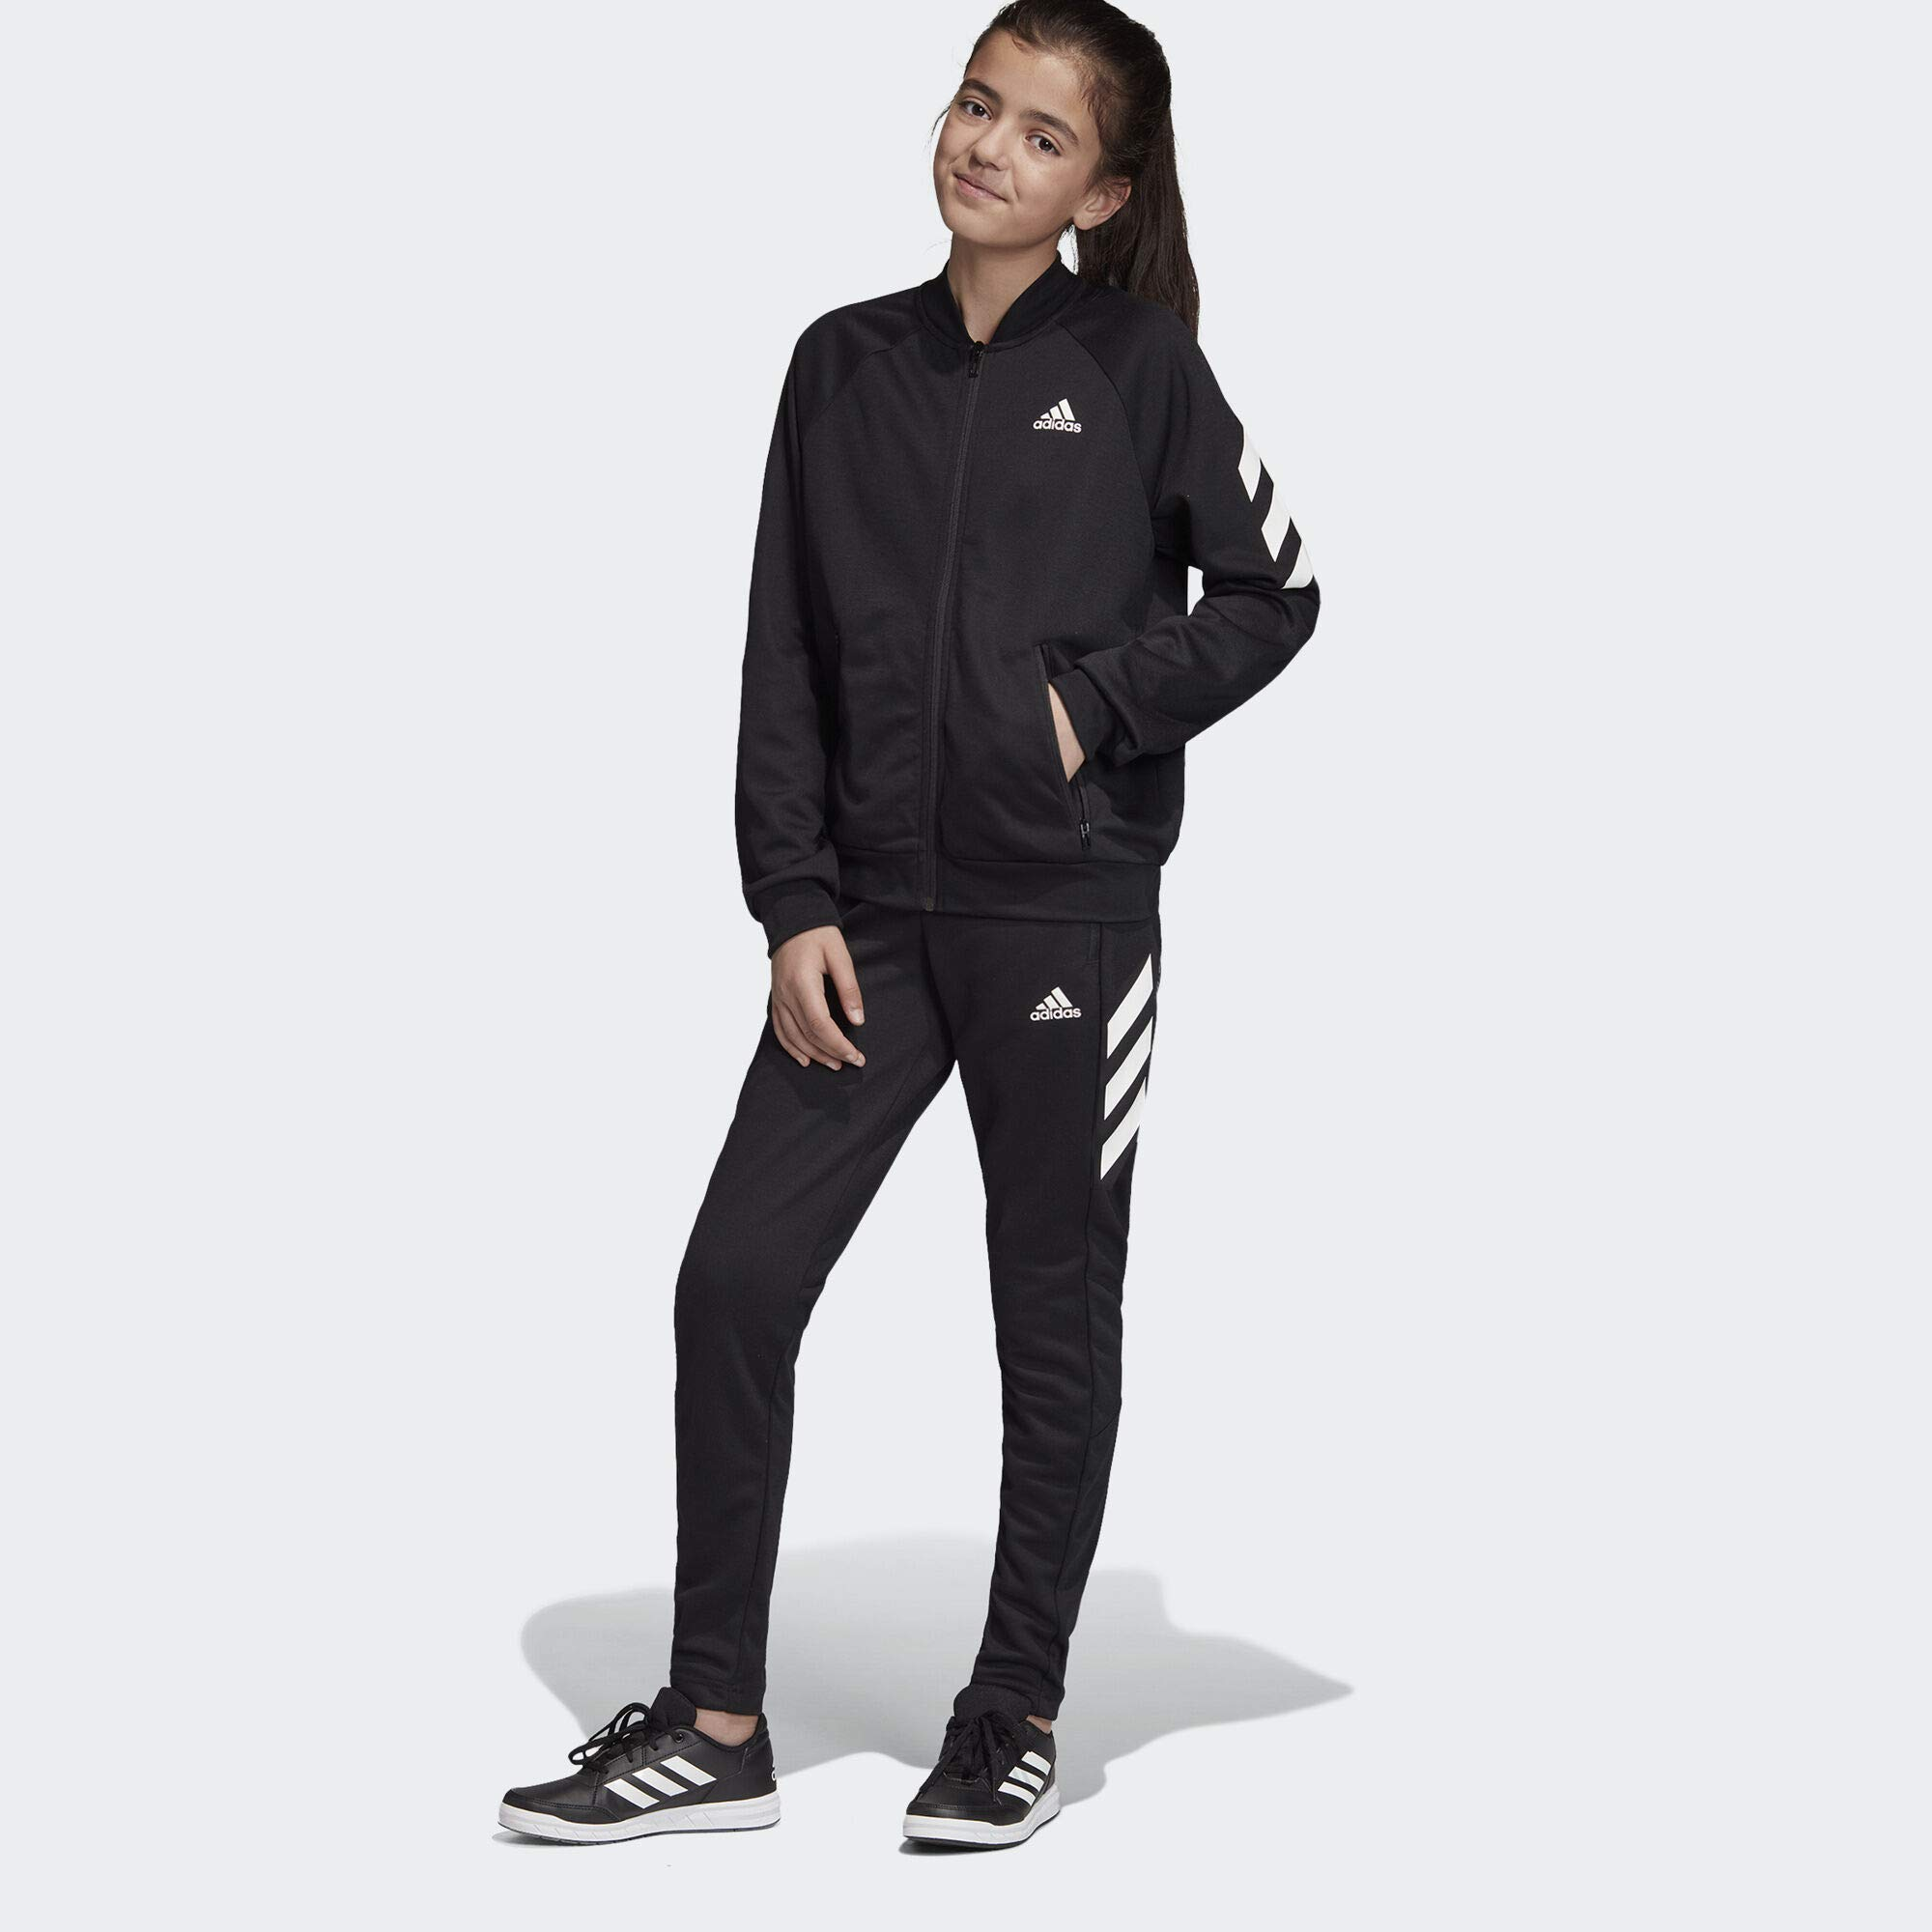 adidas XFG Track Suit Kids', Black, Size S by adidas